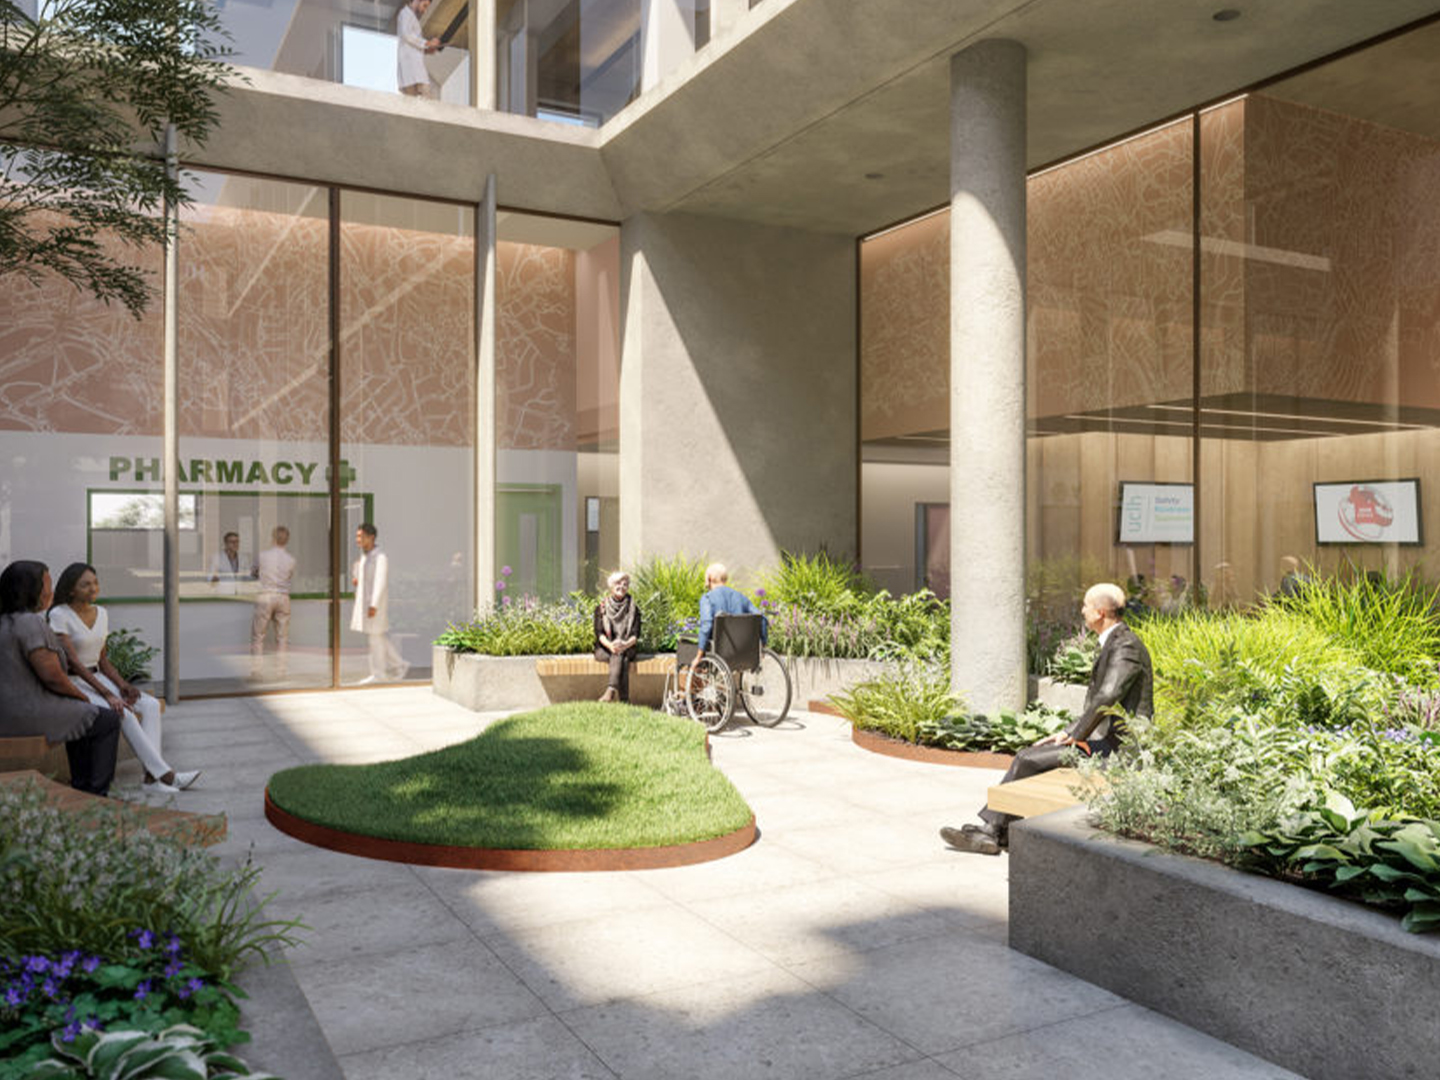 Project Showcase: Building hospitals, with a shift in perspective